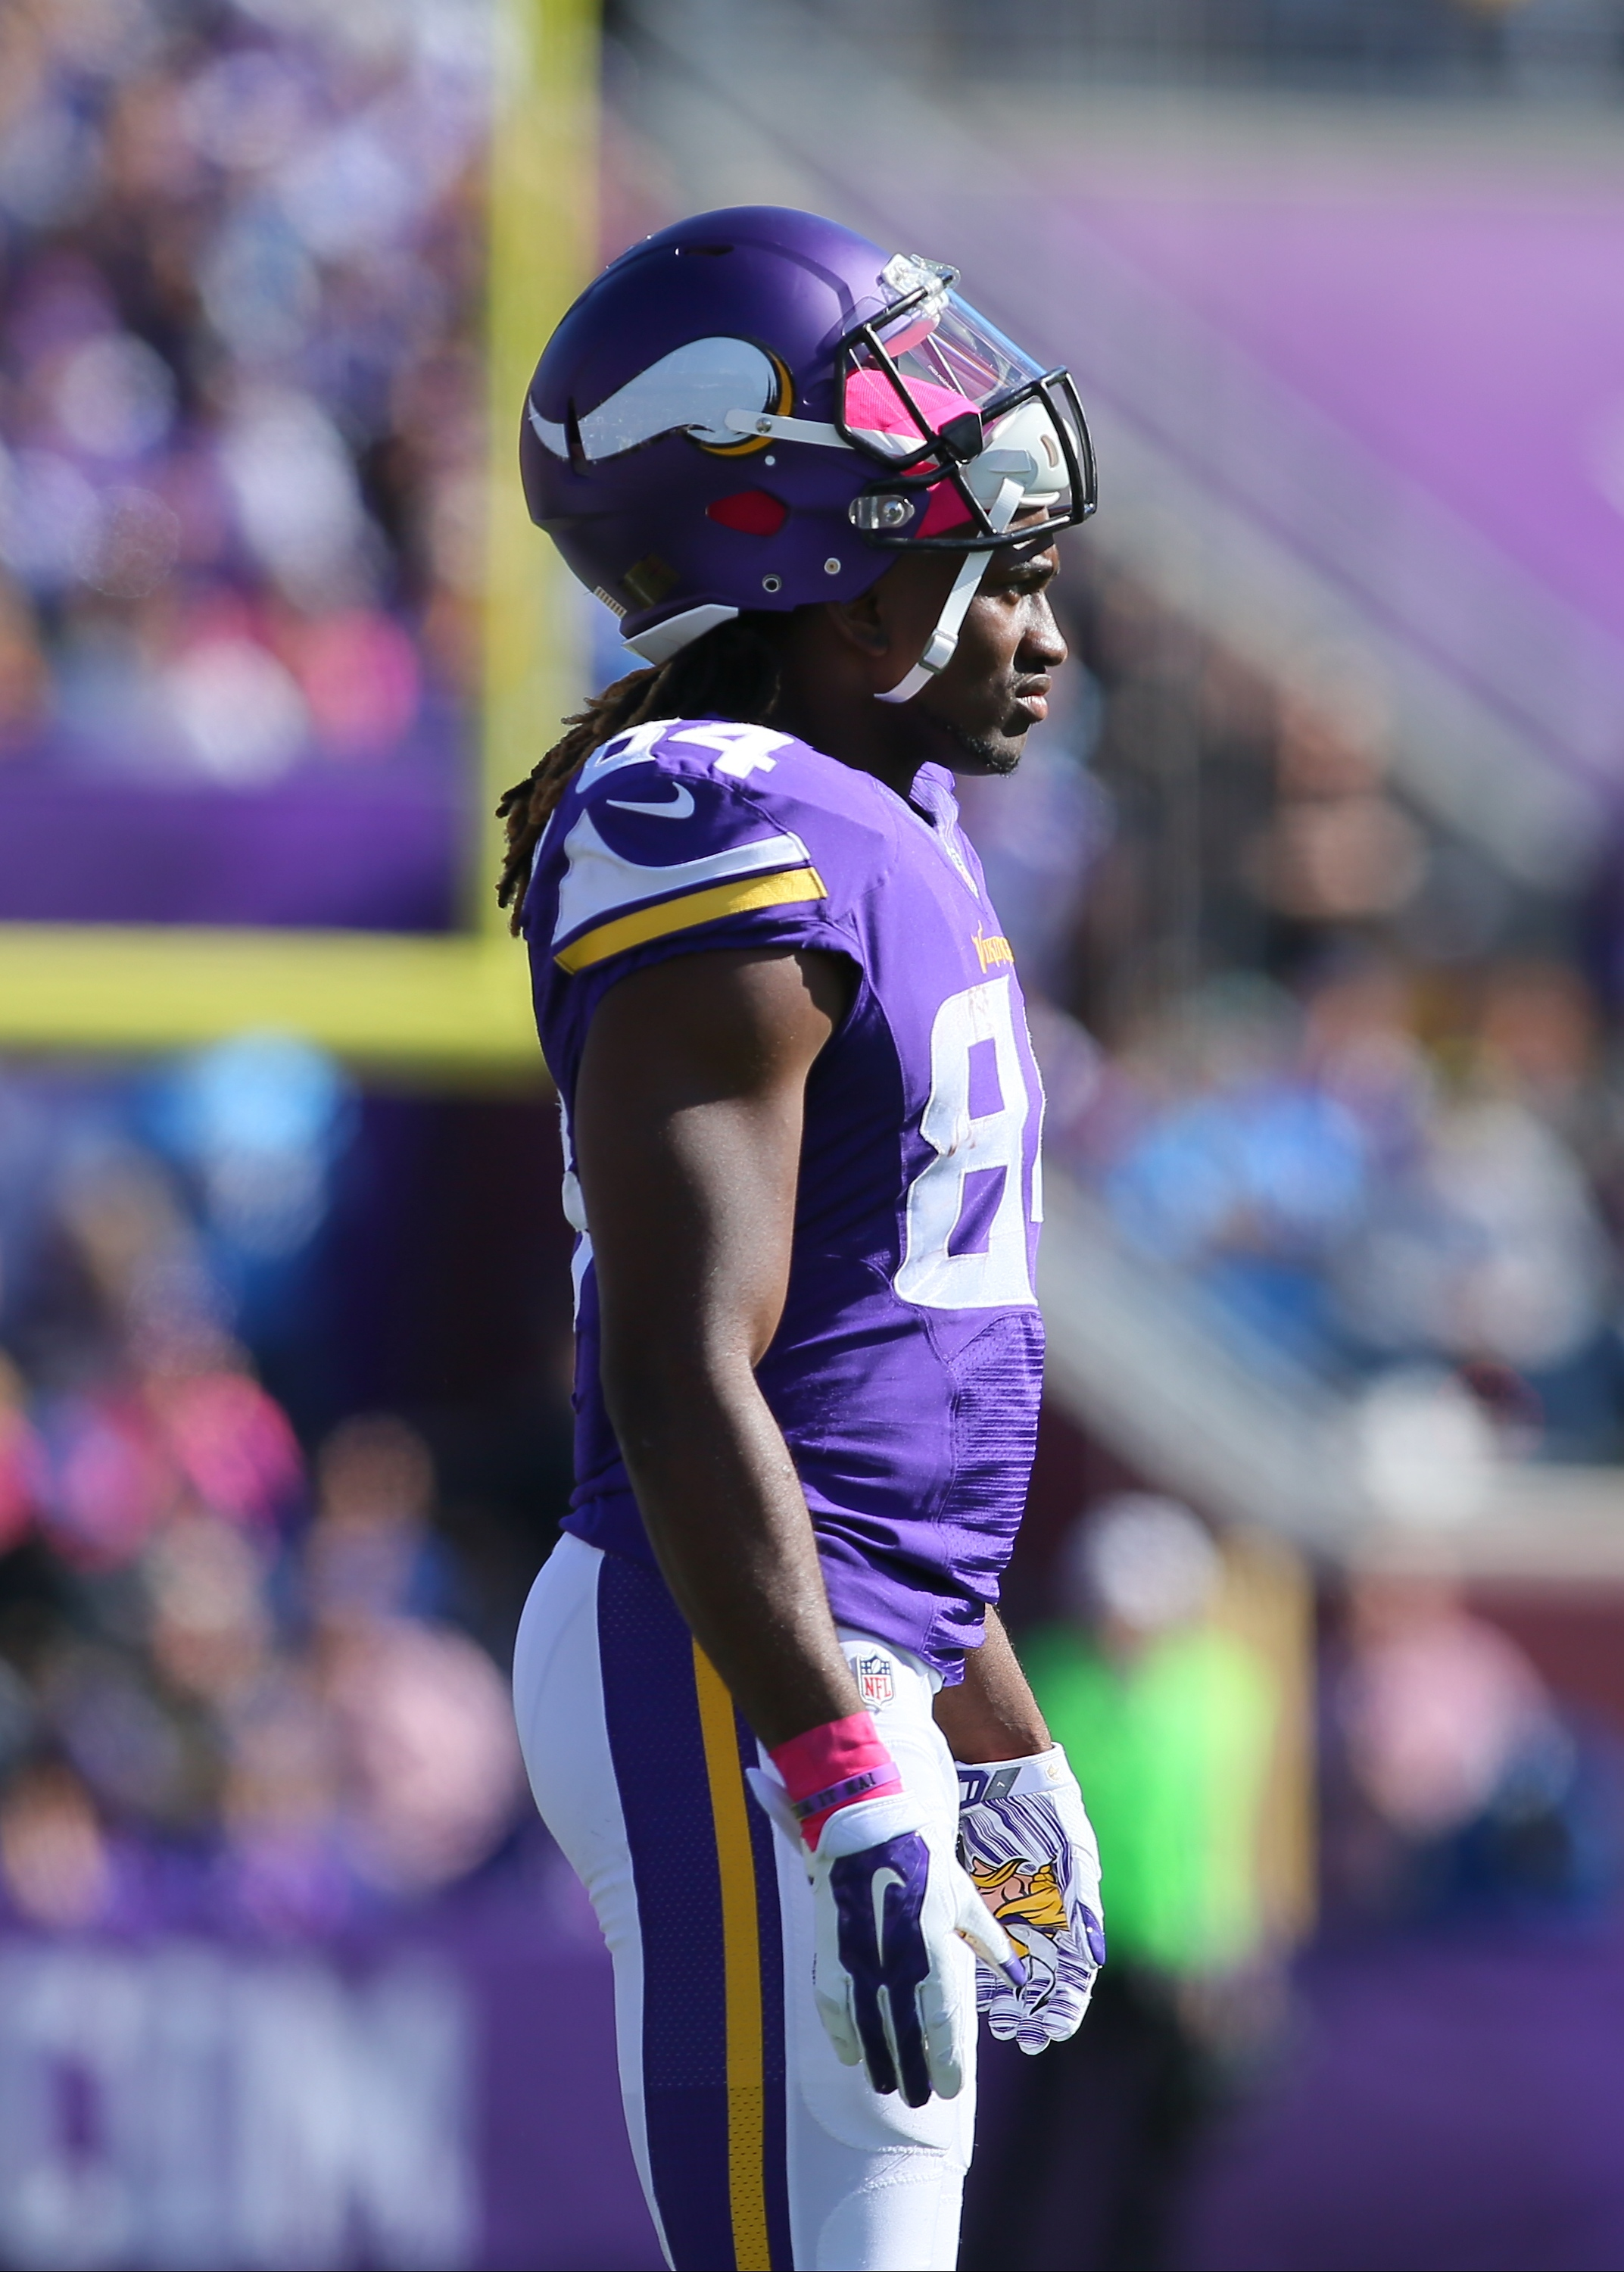 Cordarrelle Patterson, without football. Naturally. (Photo by Adam Bettcher/Getty Images)